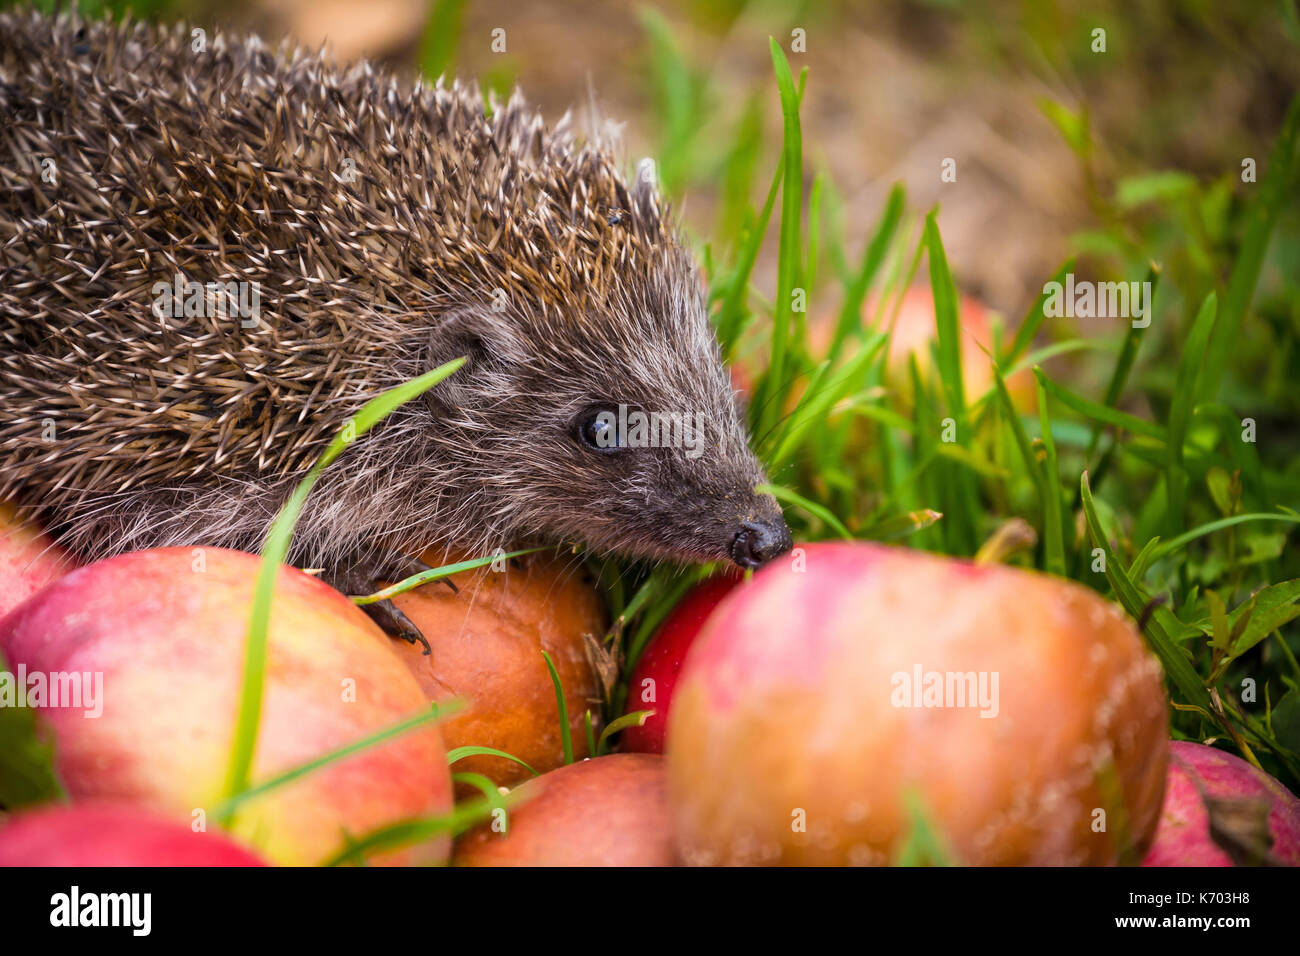 Hedgehog on aplles in nature view, wildlife portrait - Stock Image